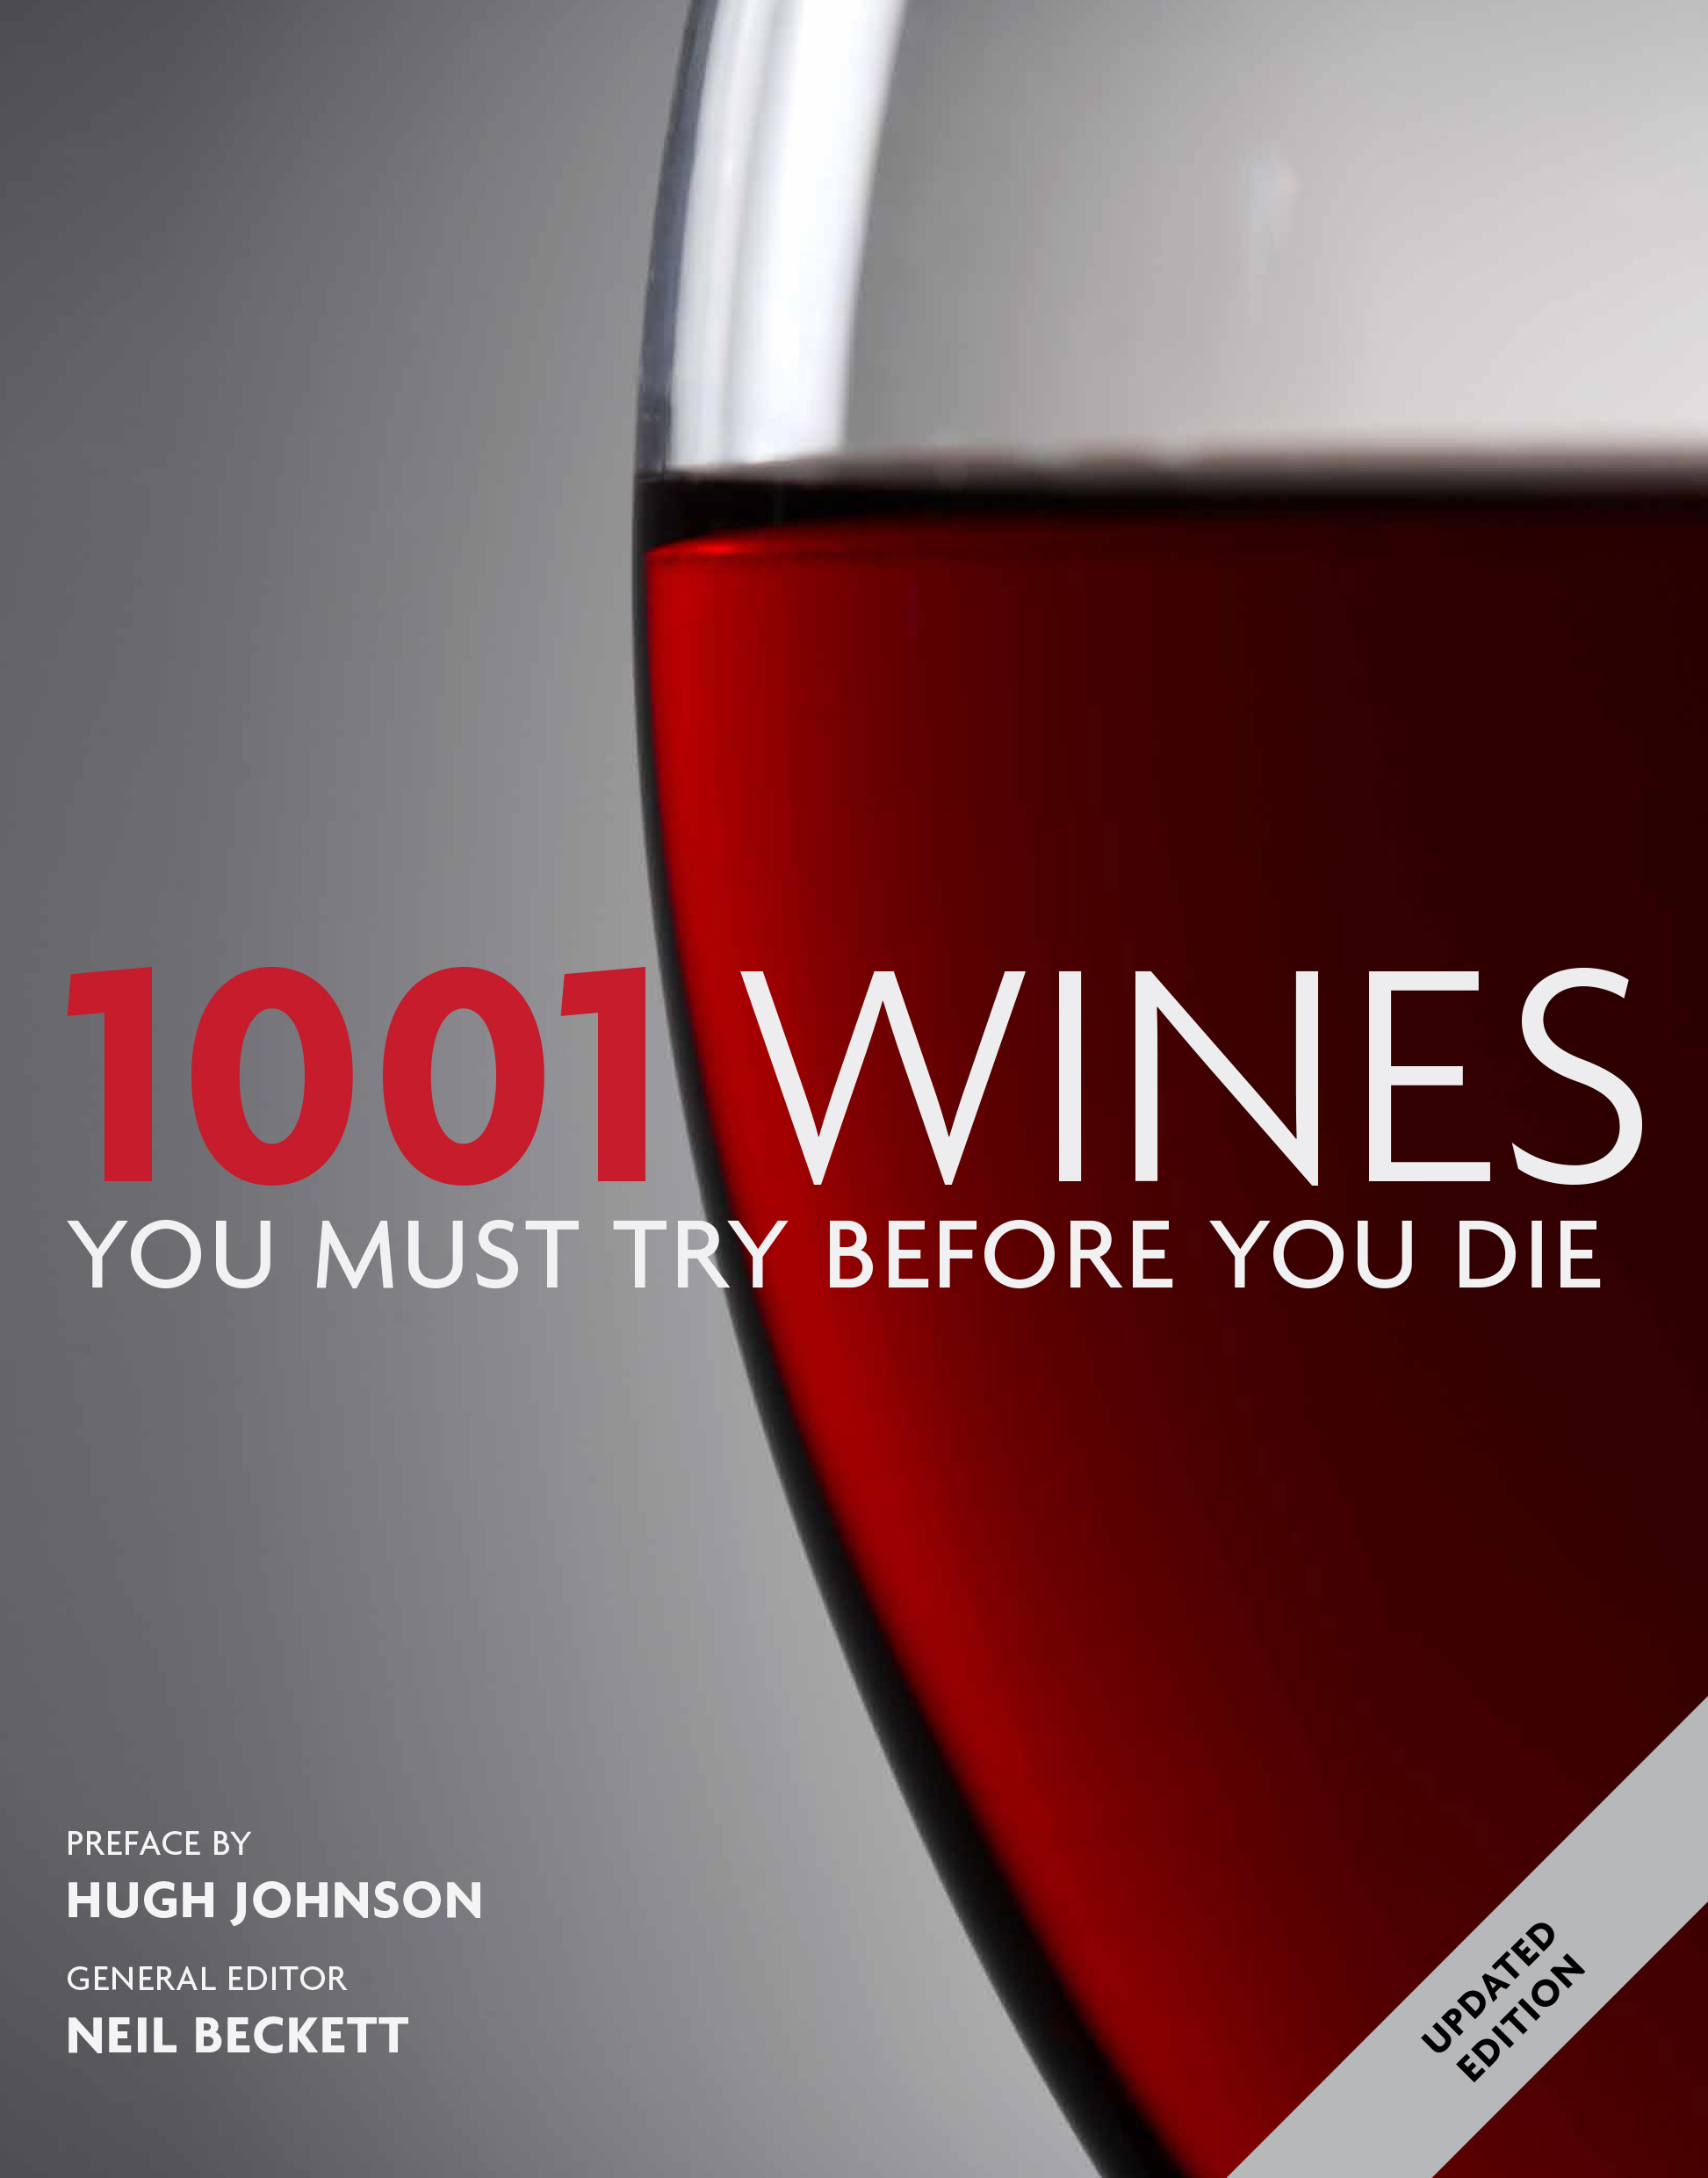 1001 Wines You Must Try Before You Die. General Editor Neil Beckett. AUD  $39.99. Discount: Price / COM_VIRTUEMART_UNIT_SYMBOL_:. 9781743363058.jpg.  Download ...